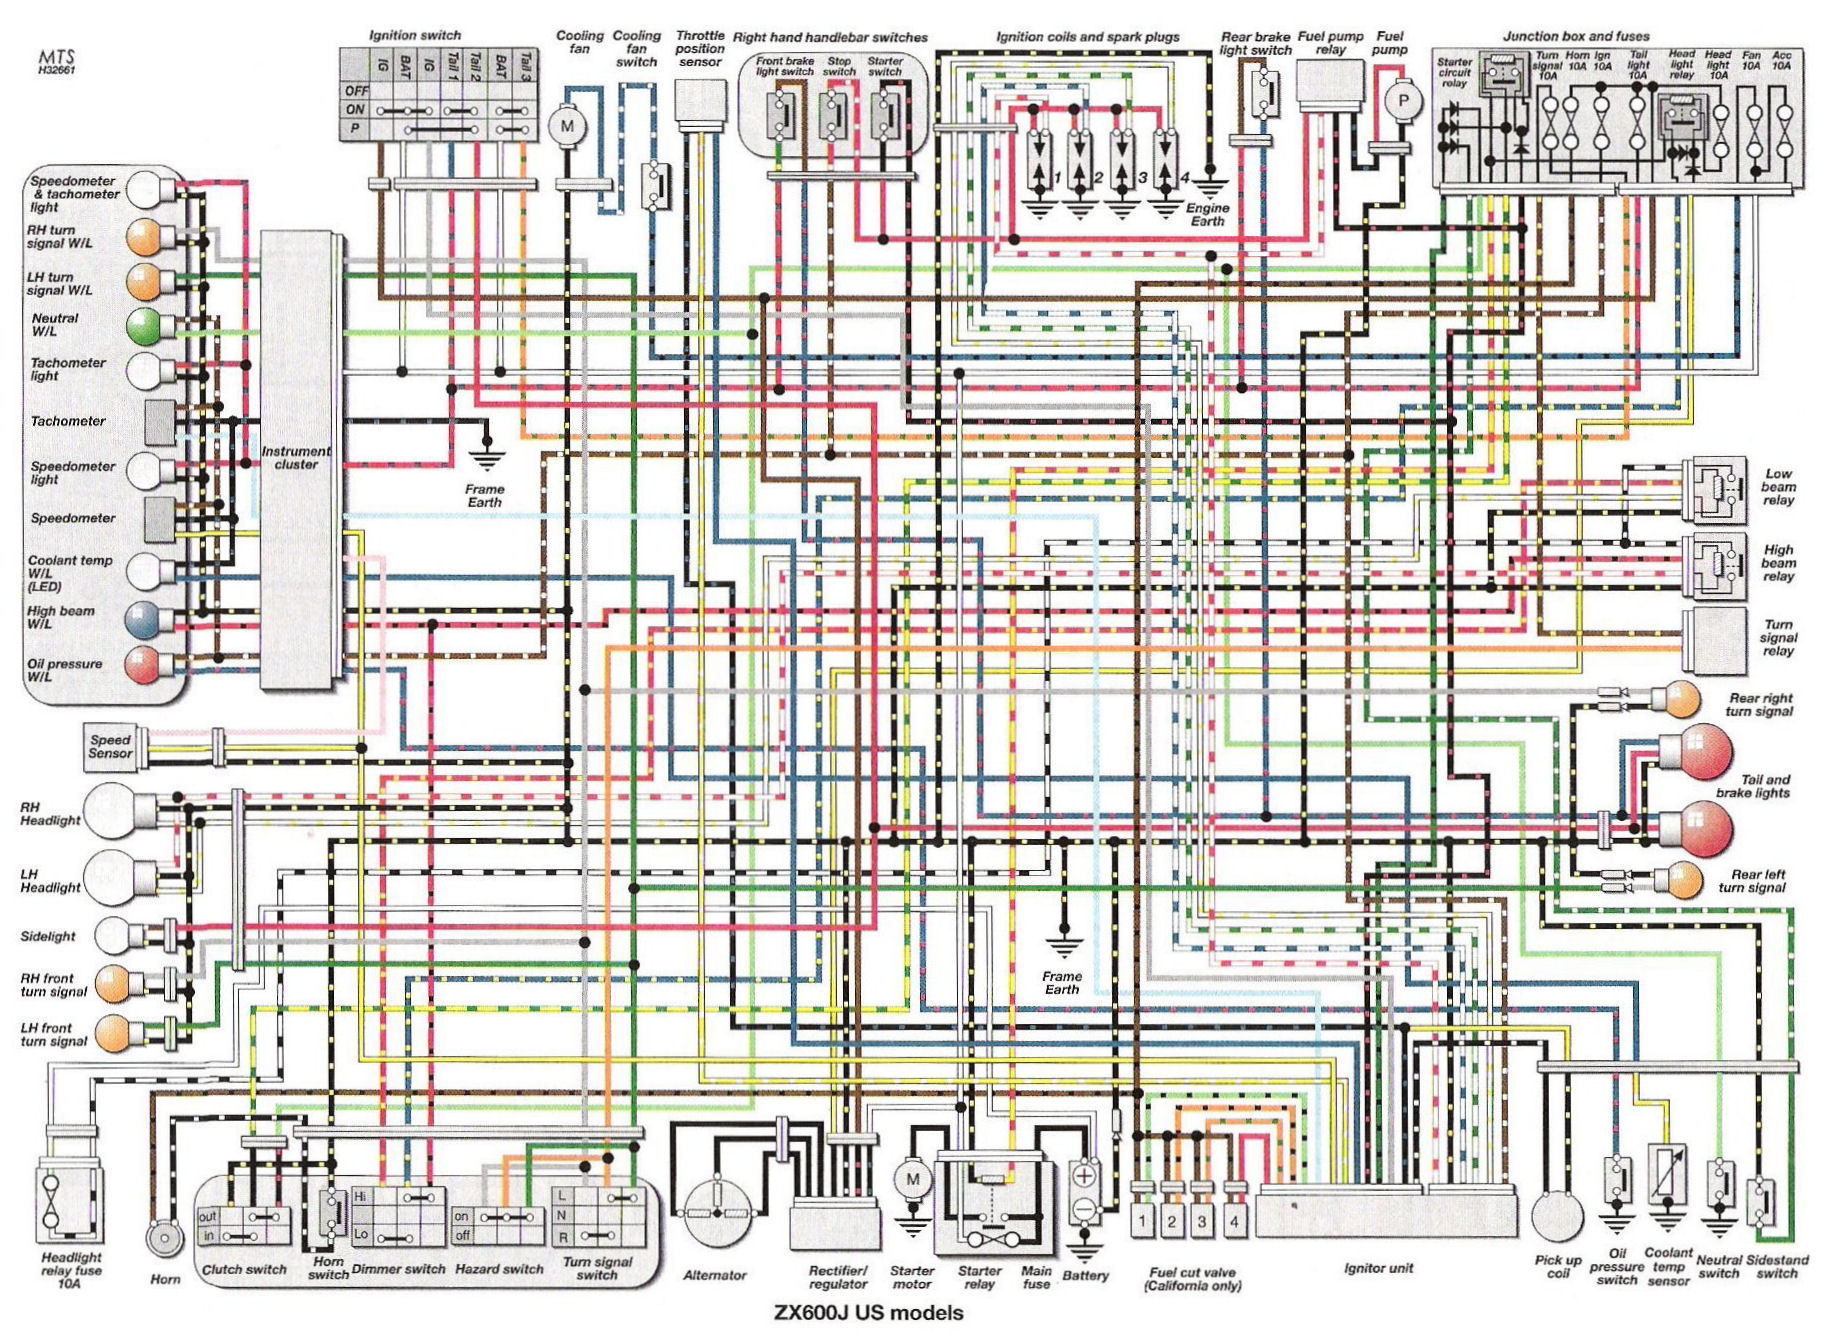 Led Turn Signal Install Help Please Flasher Wiring Diagram Click Image For Larger Version Name Views 14846 Size 6571